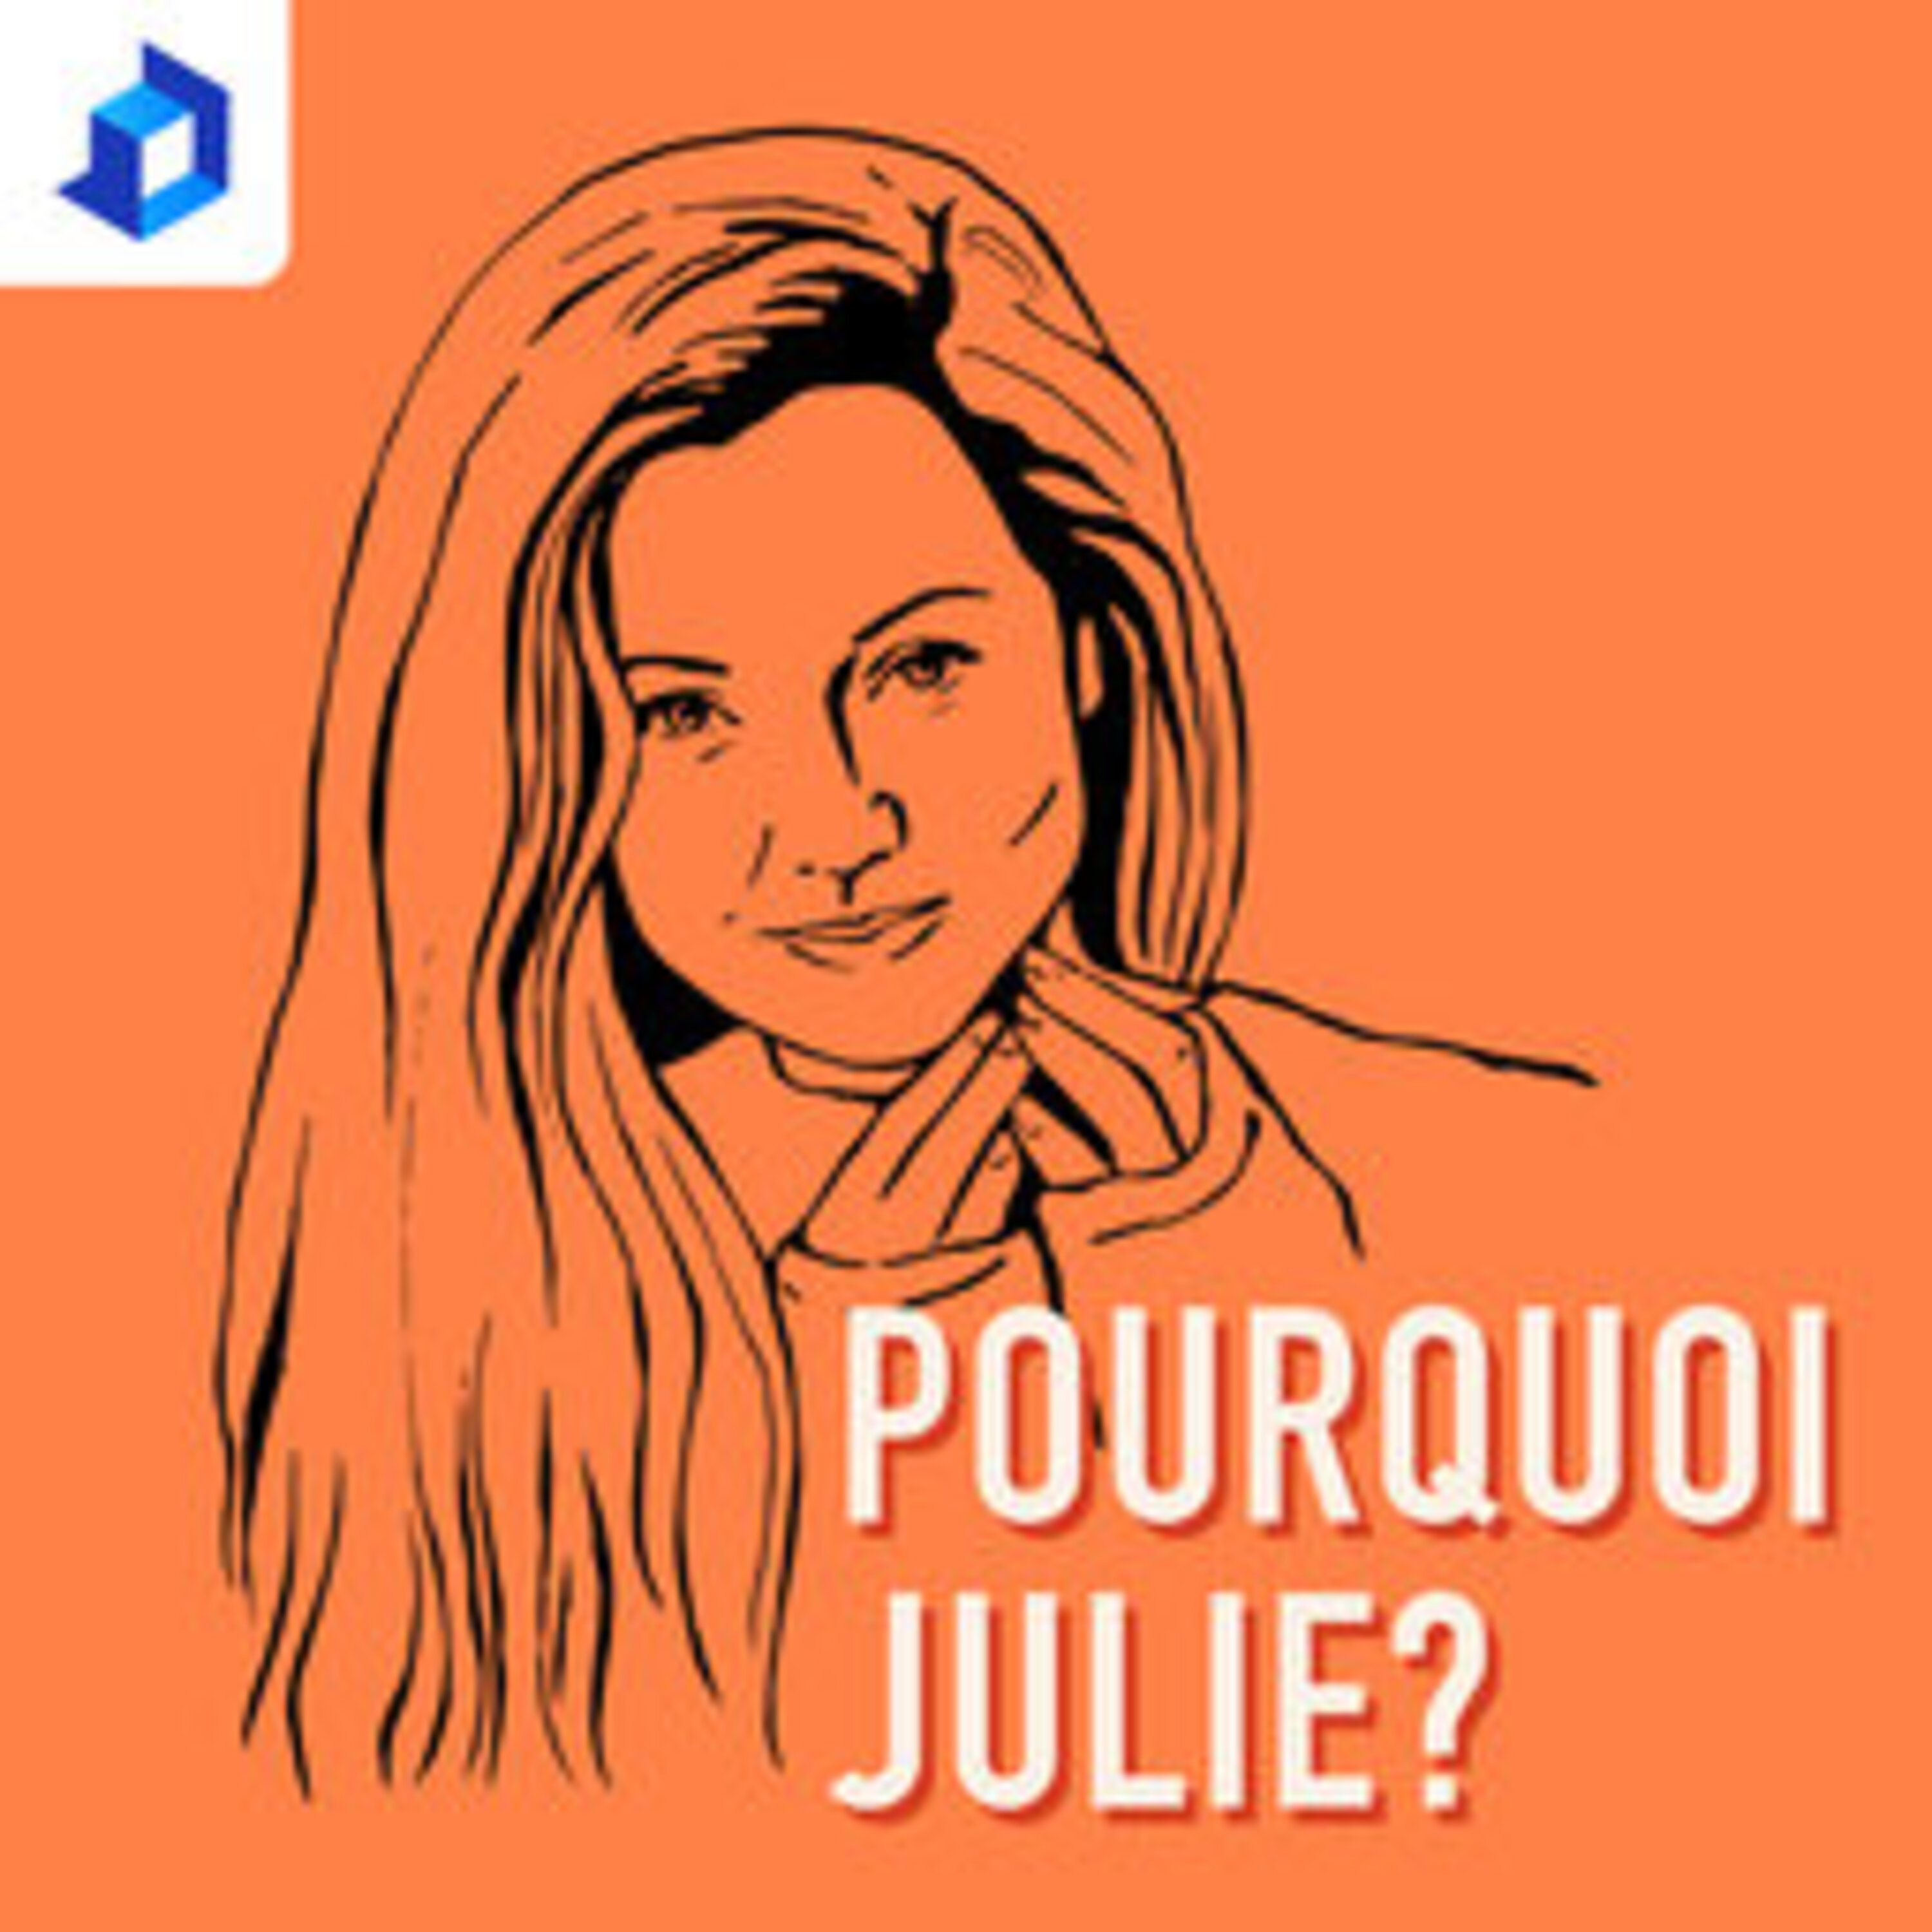 Pourquoi Julie? E4 - One more moment with(out) you